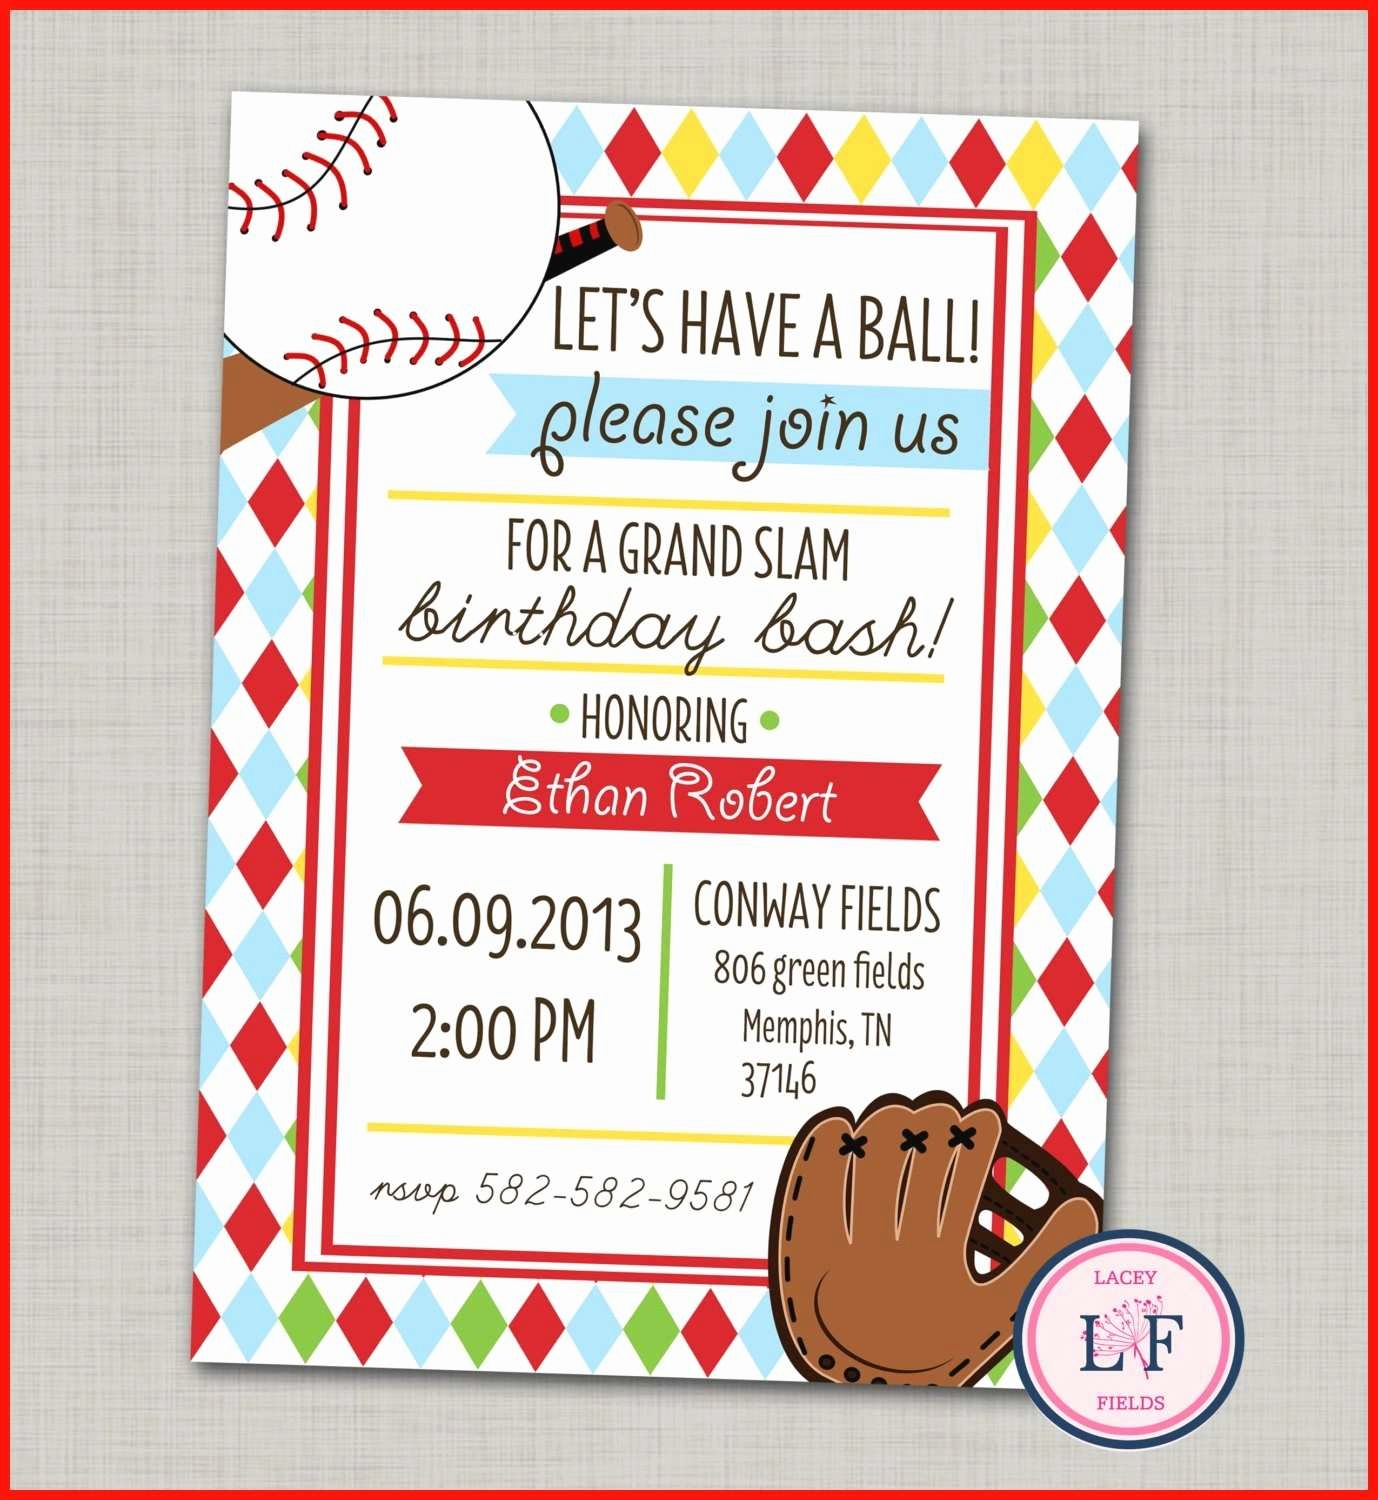 Ticket Vorlage Kostenlos Einzigartig Free Template for Baseball Ticket Invitation Elegant Contemporary